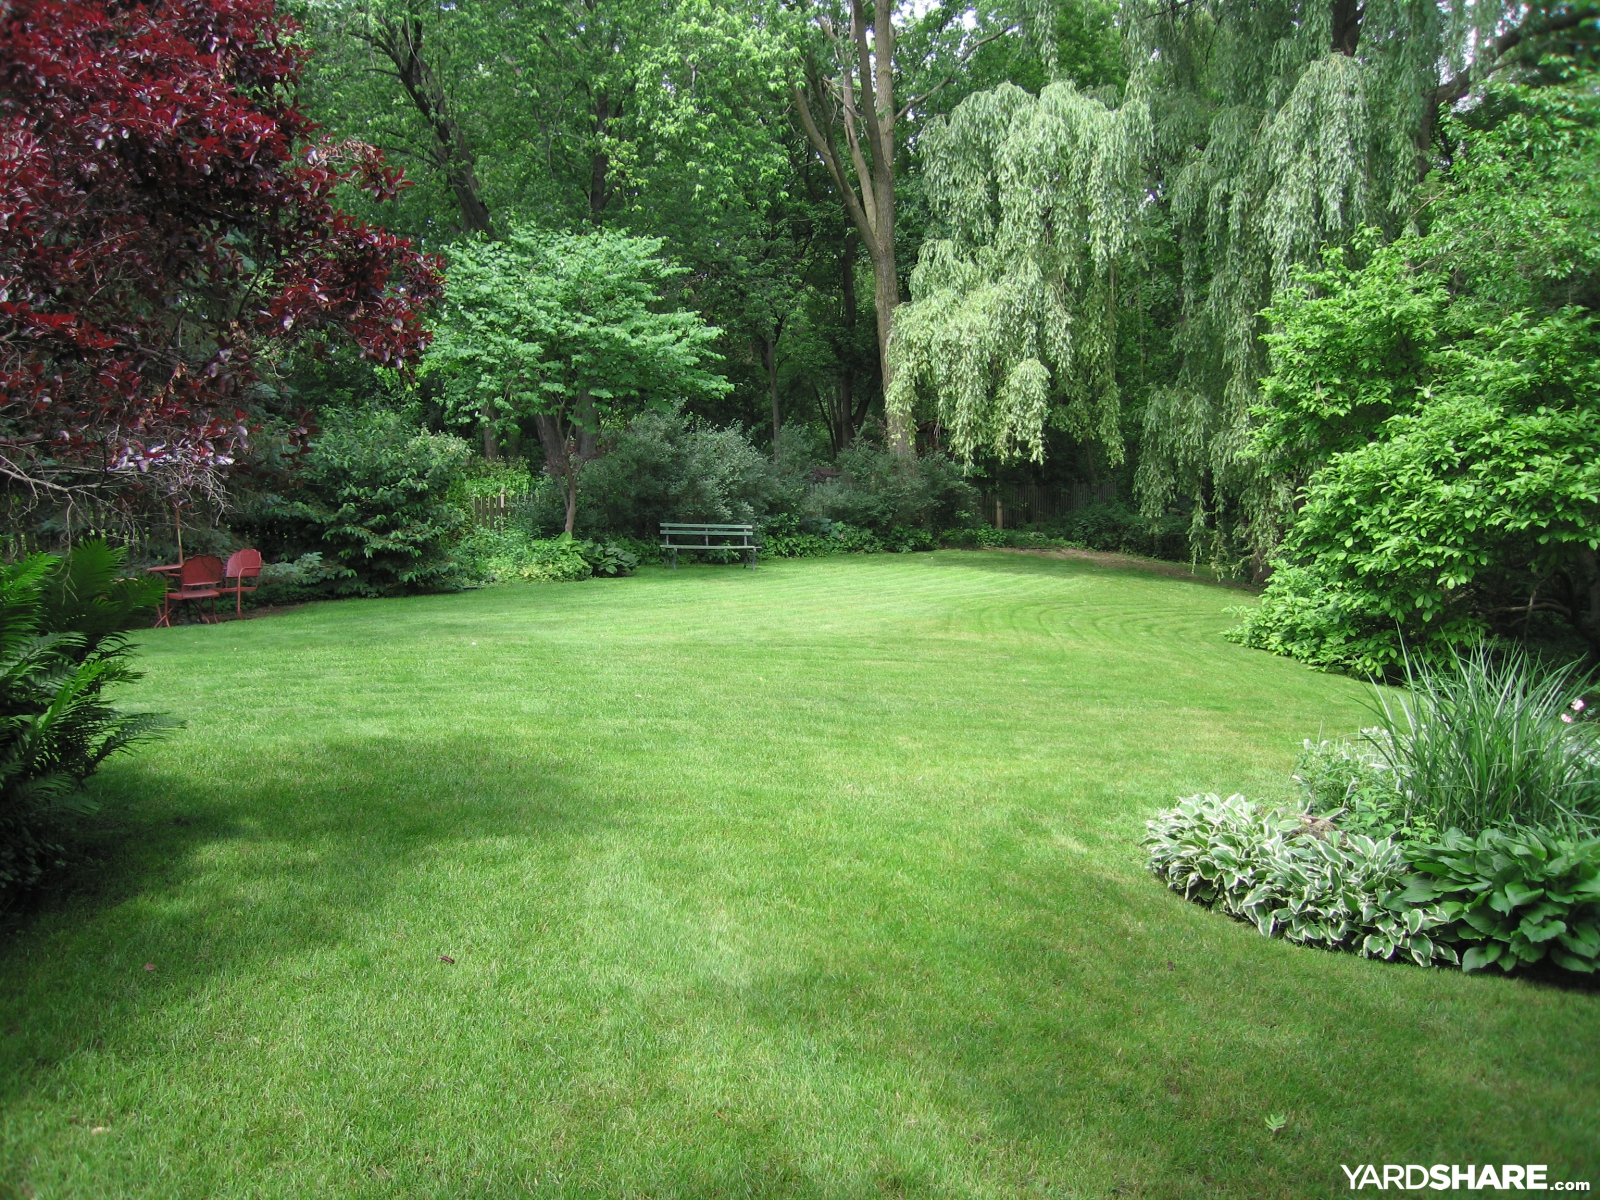 Landscaping ideas backyard at whispering oaks for Backyard garden